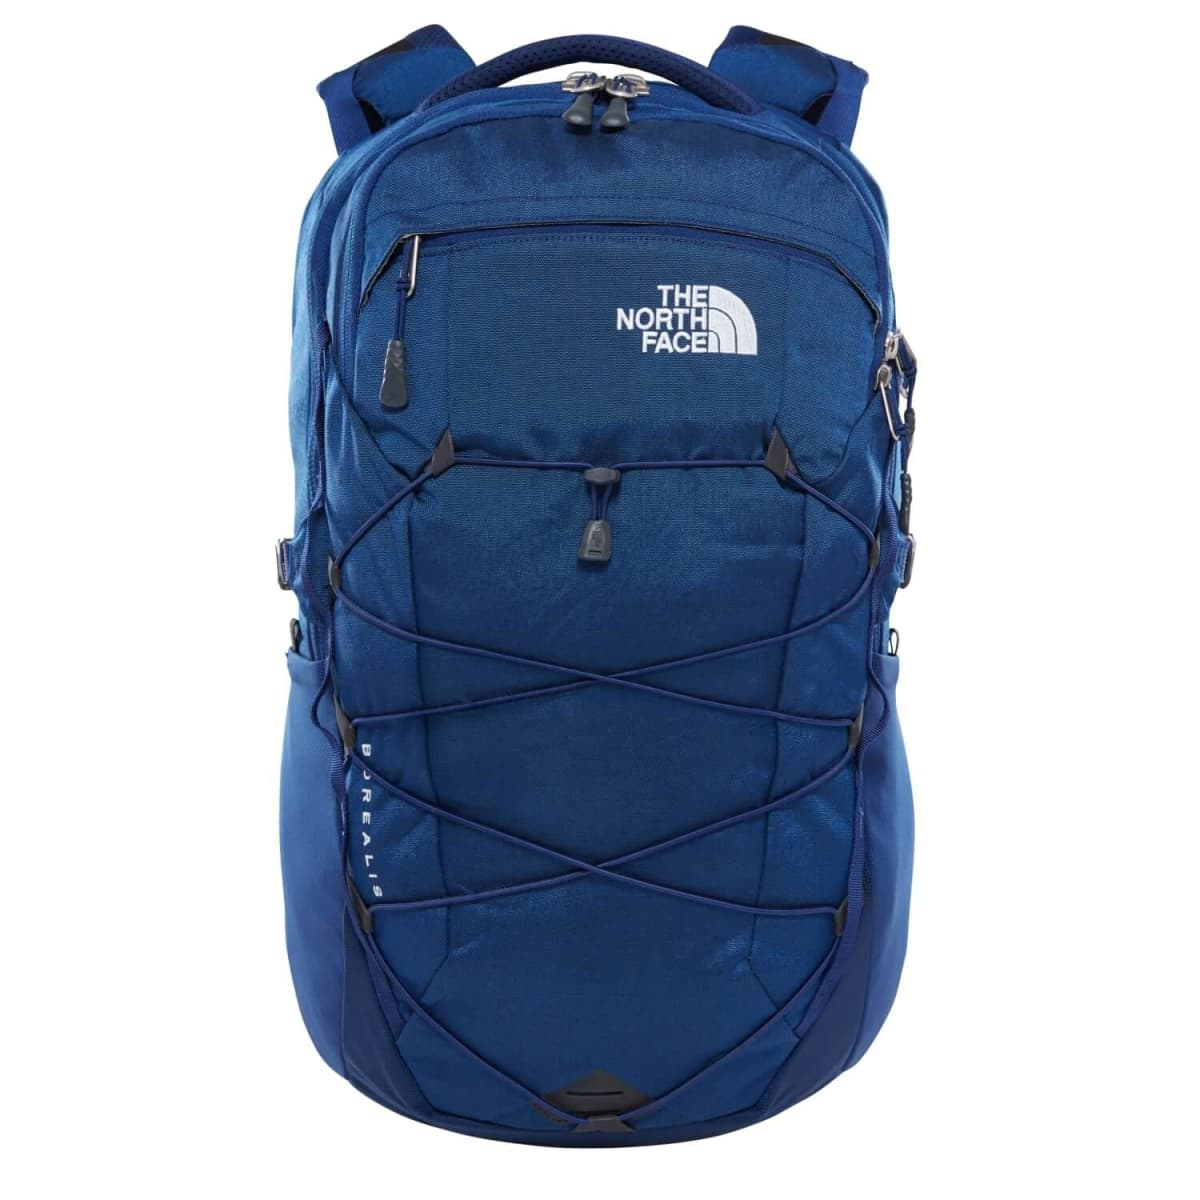 eb9b07722 North Face Products | Sportsmans Warehouse